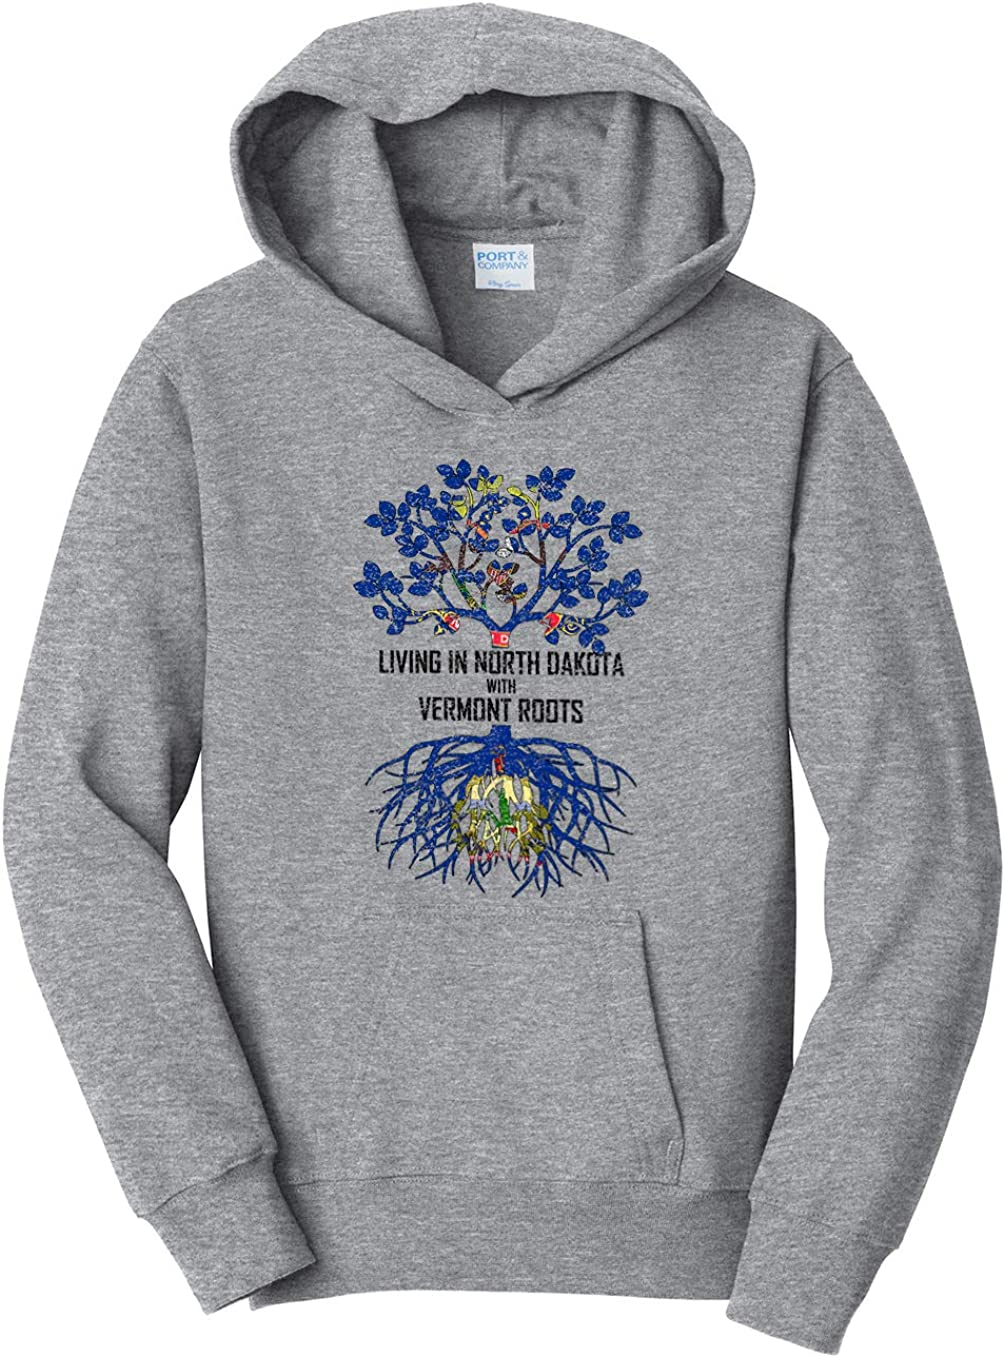 Tenacitee Girls Living in North Dakota with Vermont Roots Hooded Sweatshirt